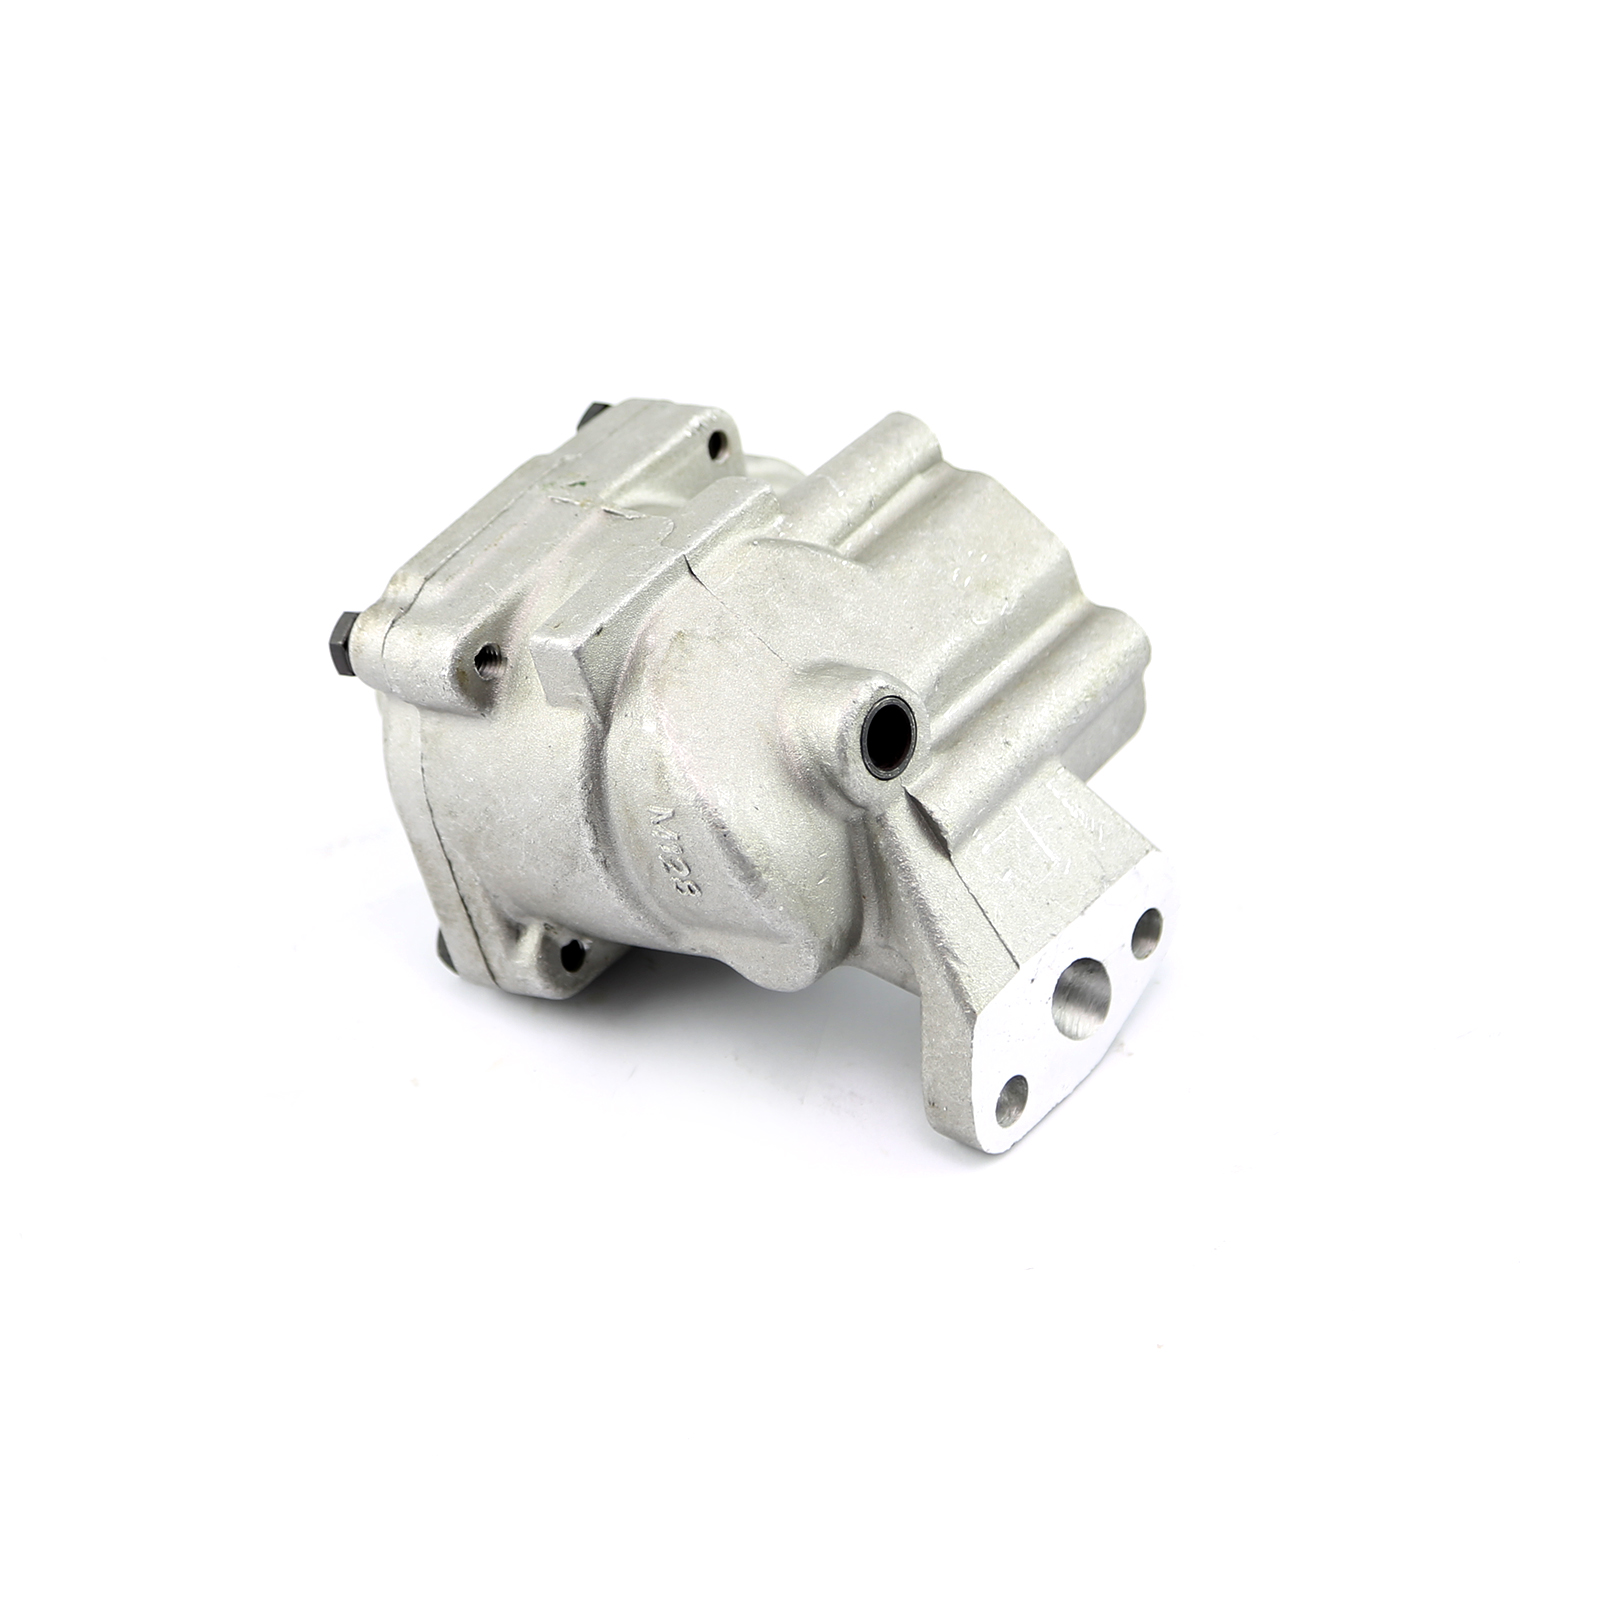 FORD MERCURY 2.9/4.0L 6cyl Standard Volume Oil Pump